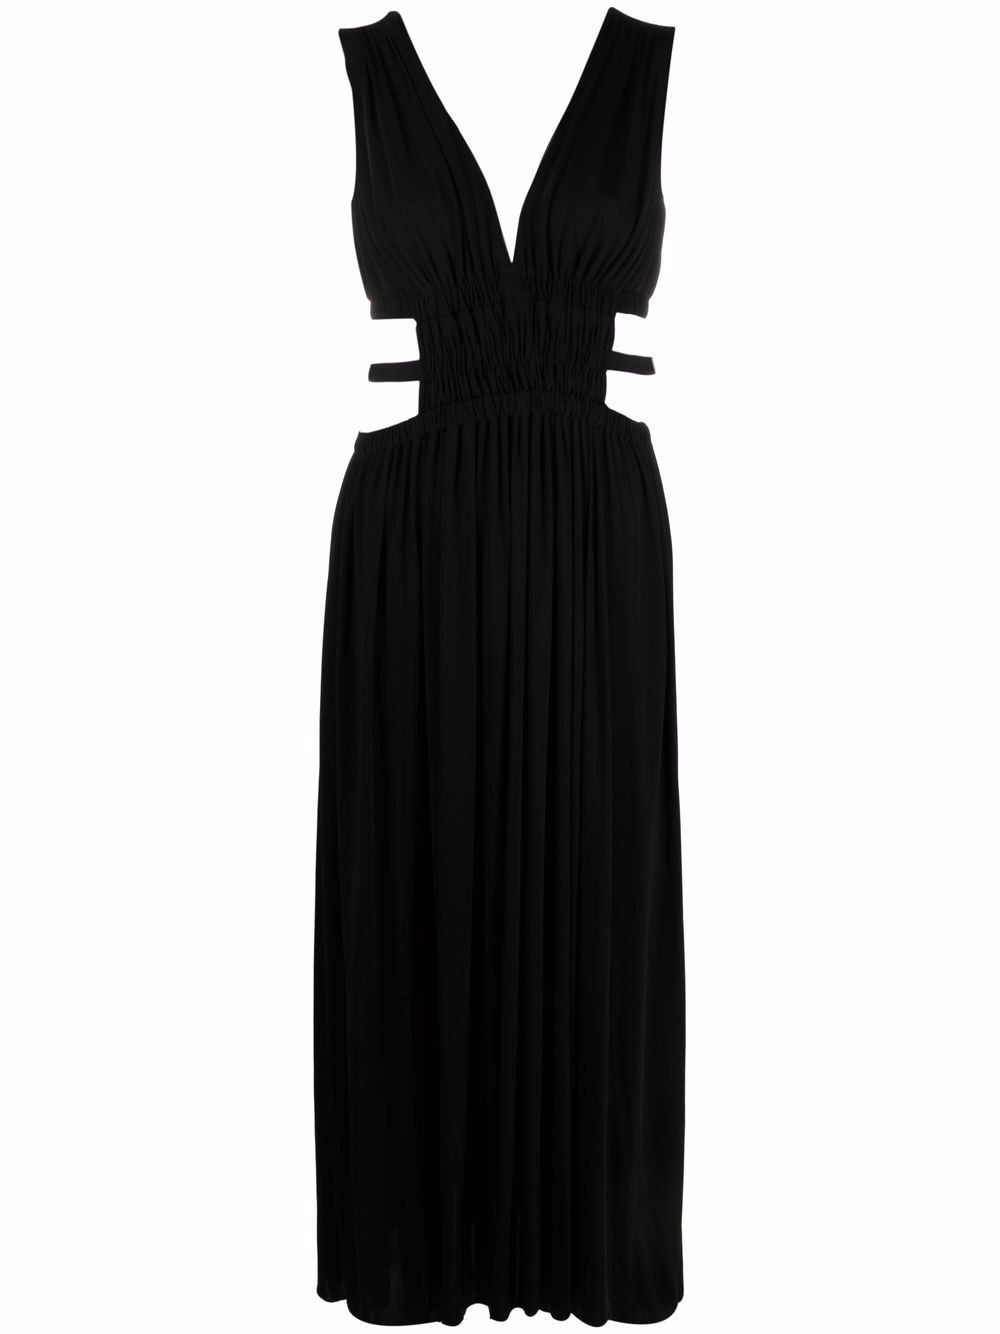 Picture of Erika Cavallini   Cut-Out V-Neck Dress